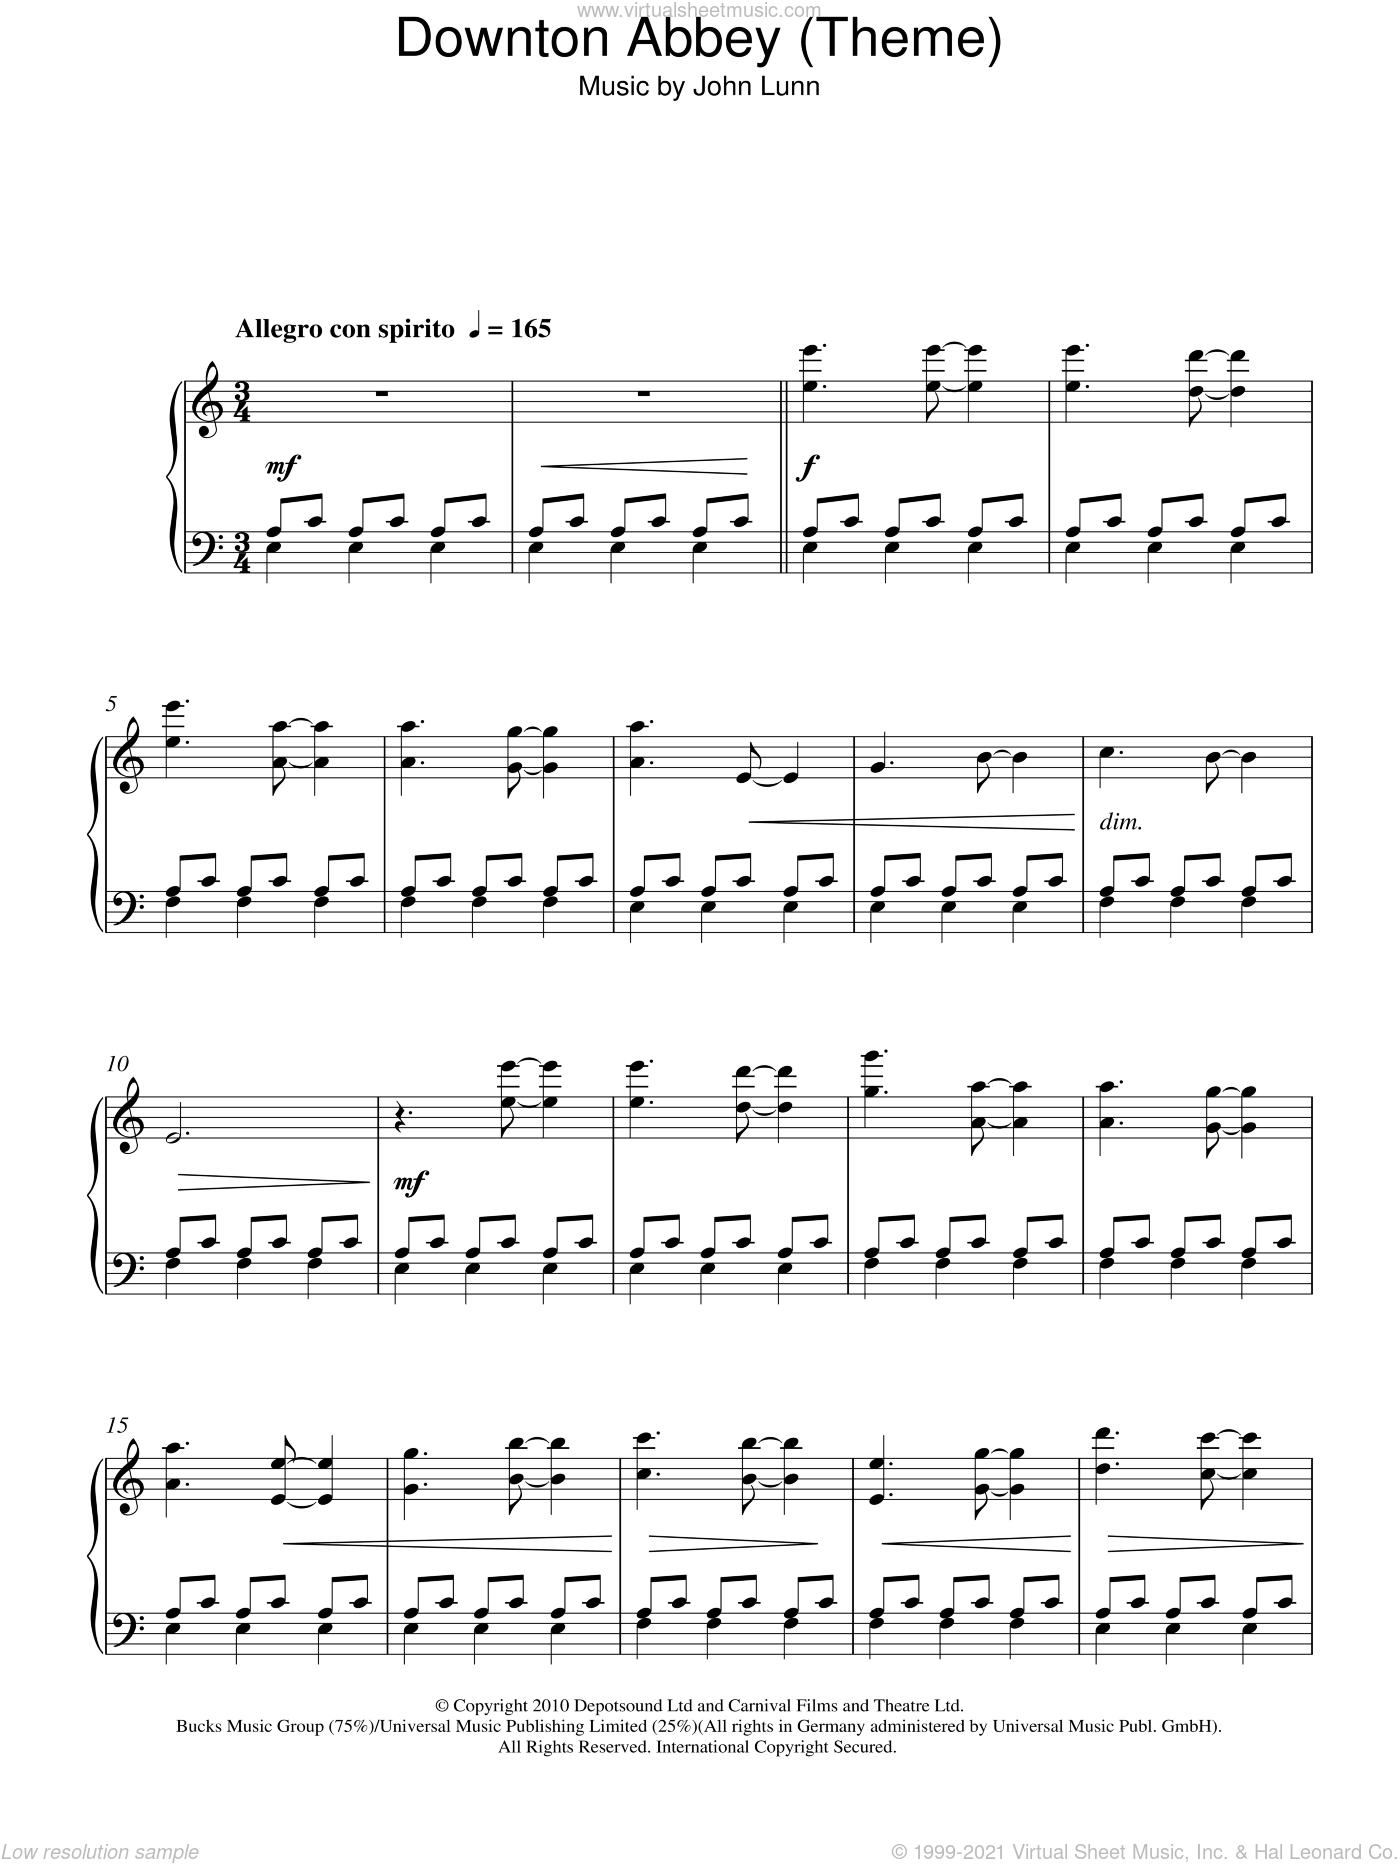 Downton Abbey (Theme) sheet music for piano solo by John Lunn, intermediate skill level